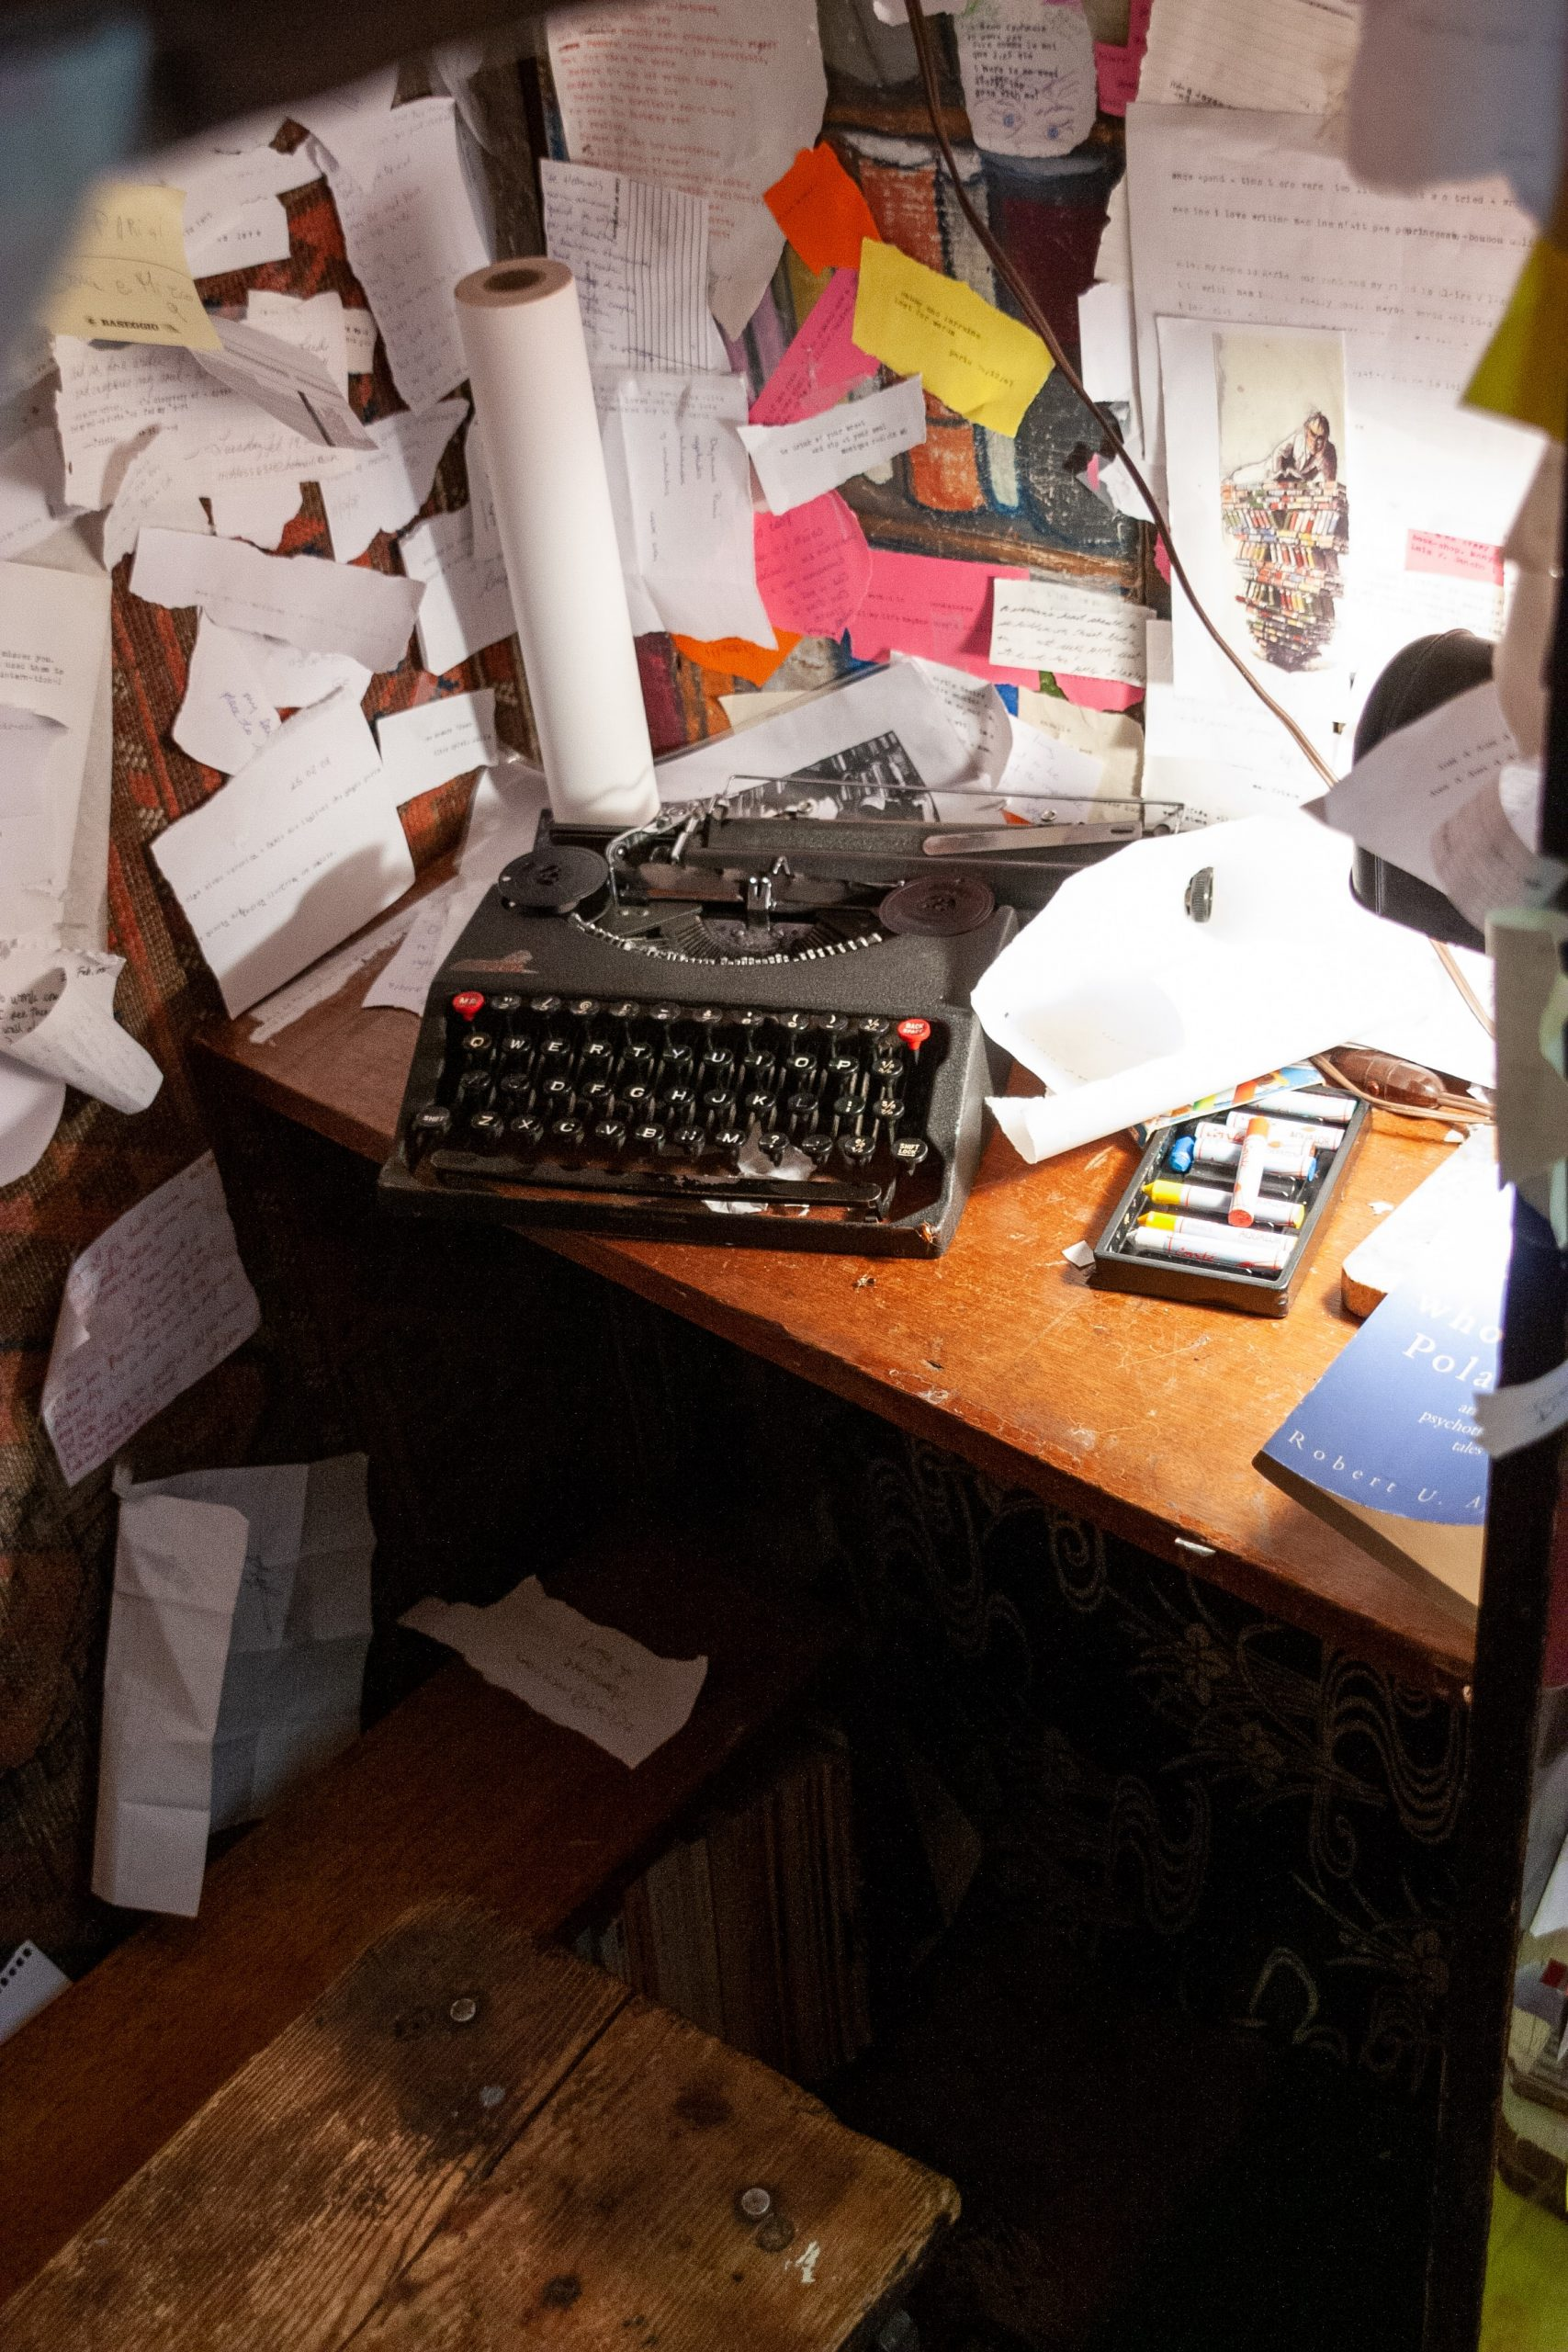 Messy Space with Typewriter